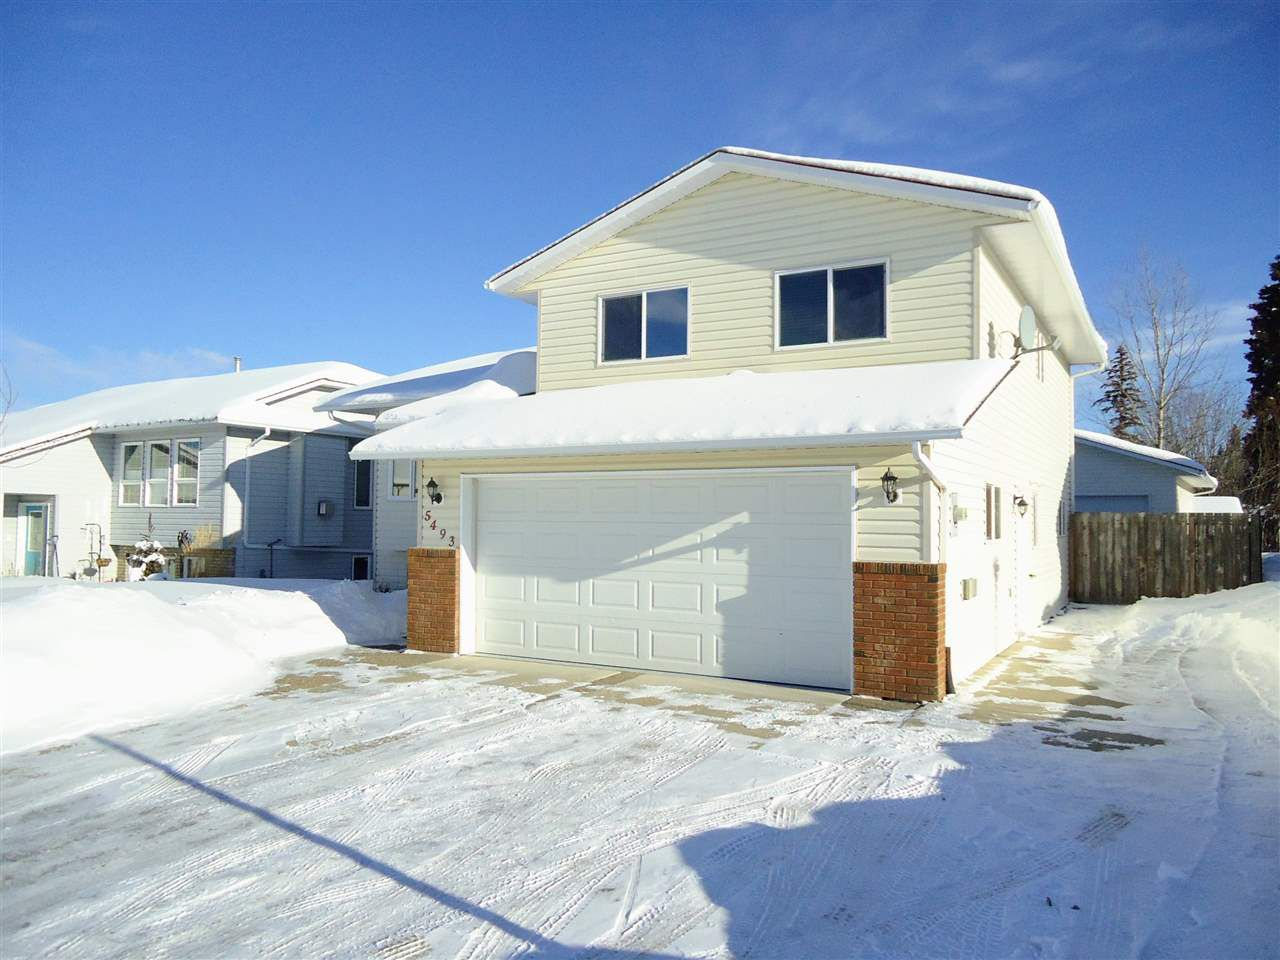 Main Photo: 5493 HEYER Road in Prince George: Haldi House for sale (PG City South (Zone 74))  : MLS®# R2340602